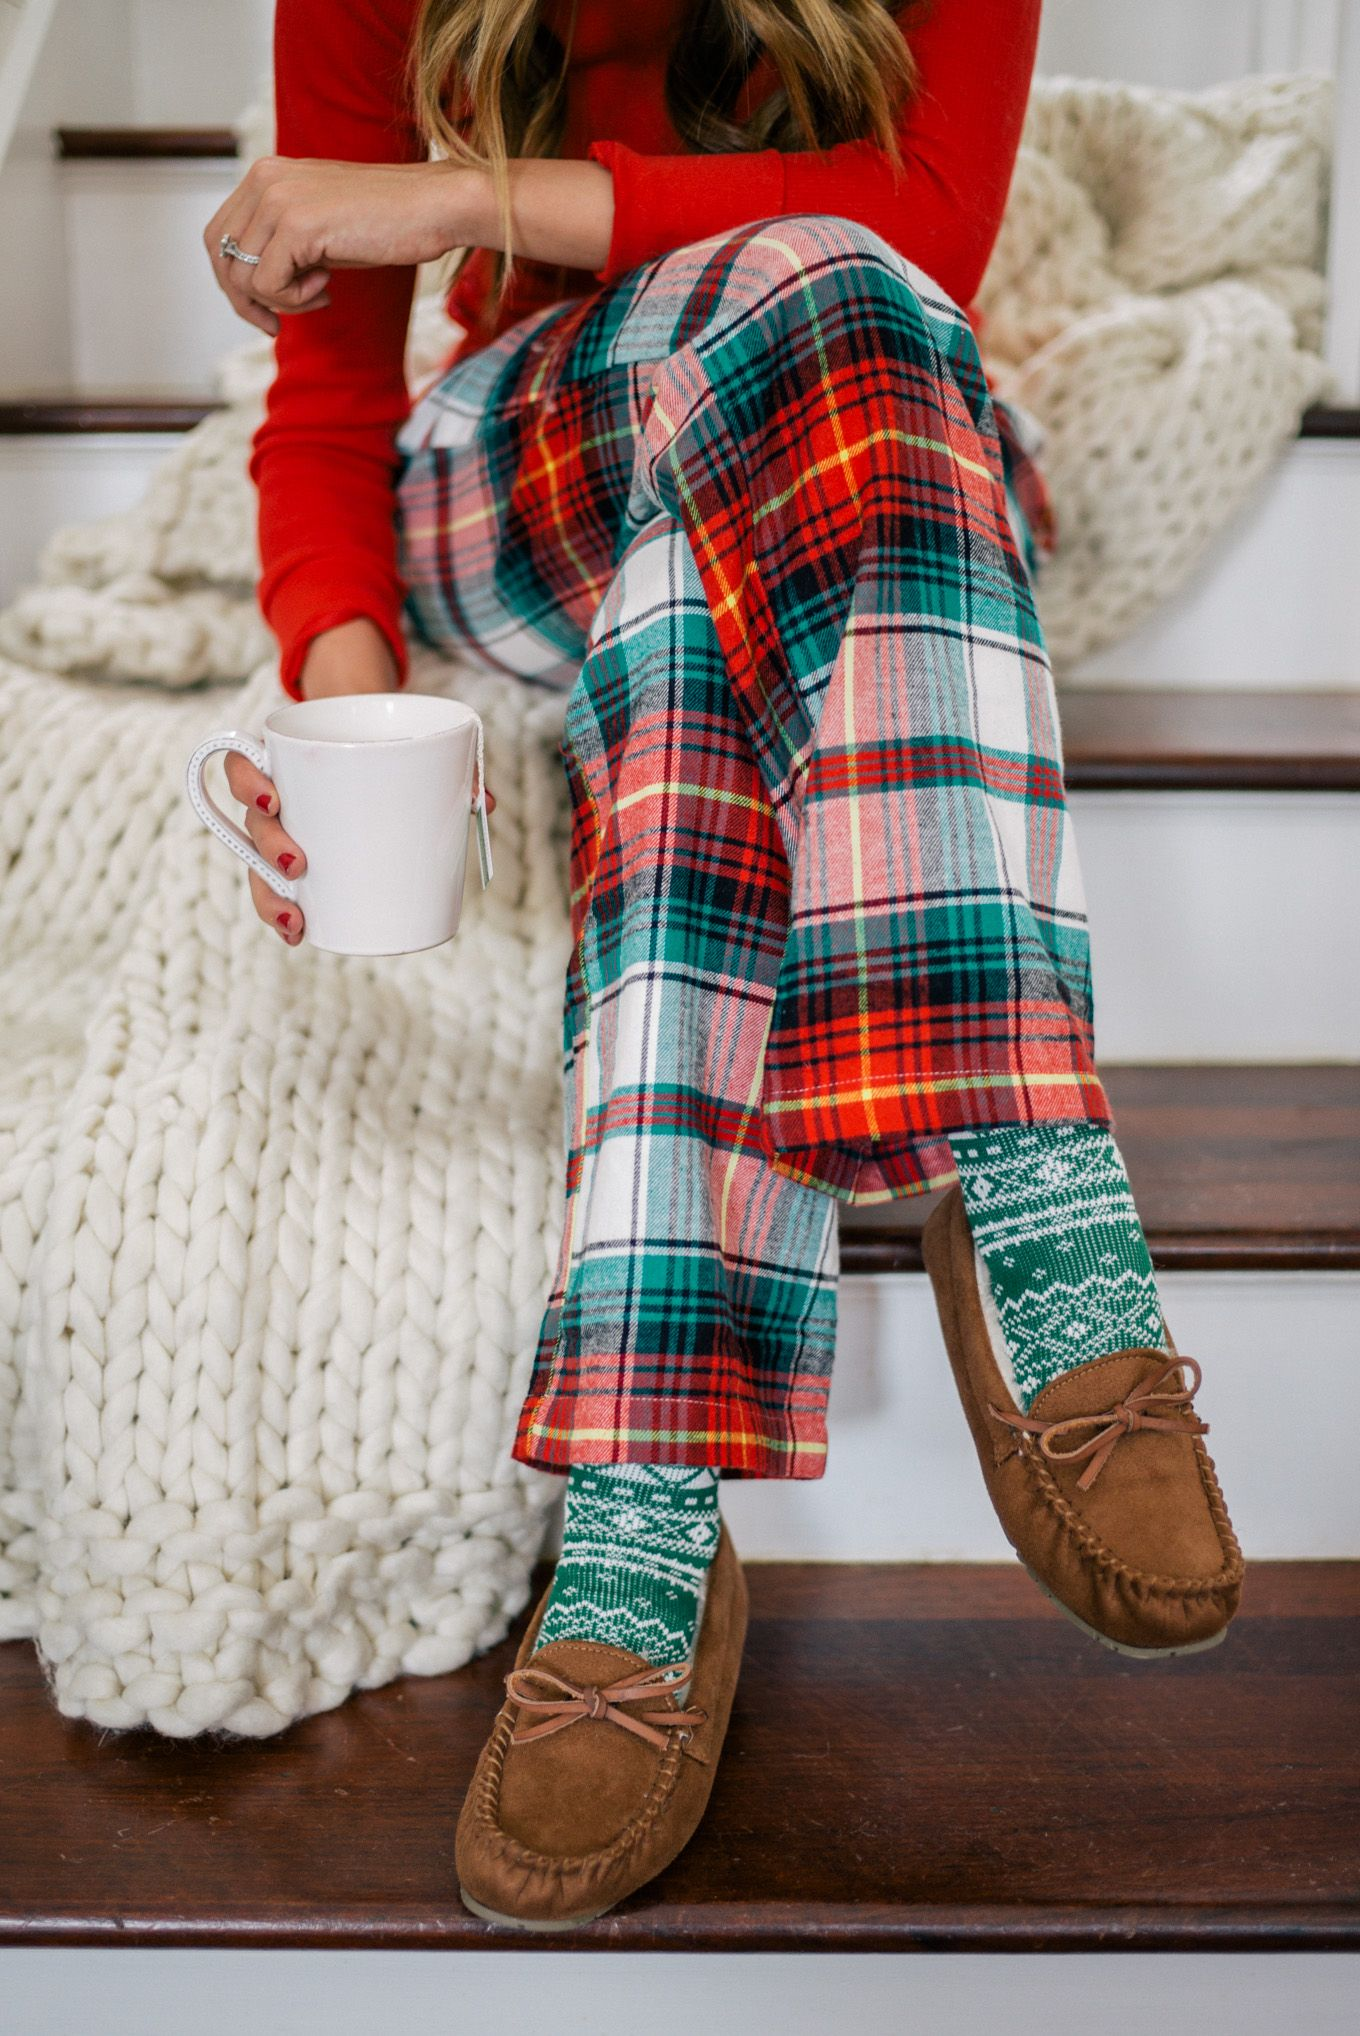 gal meets glam holiday red old navy thermal tee pants socks slippers co - Christmas Pajamas Old Navy